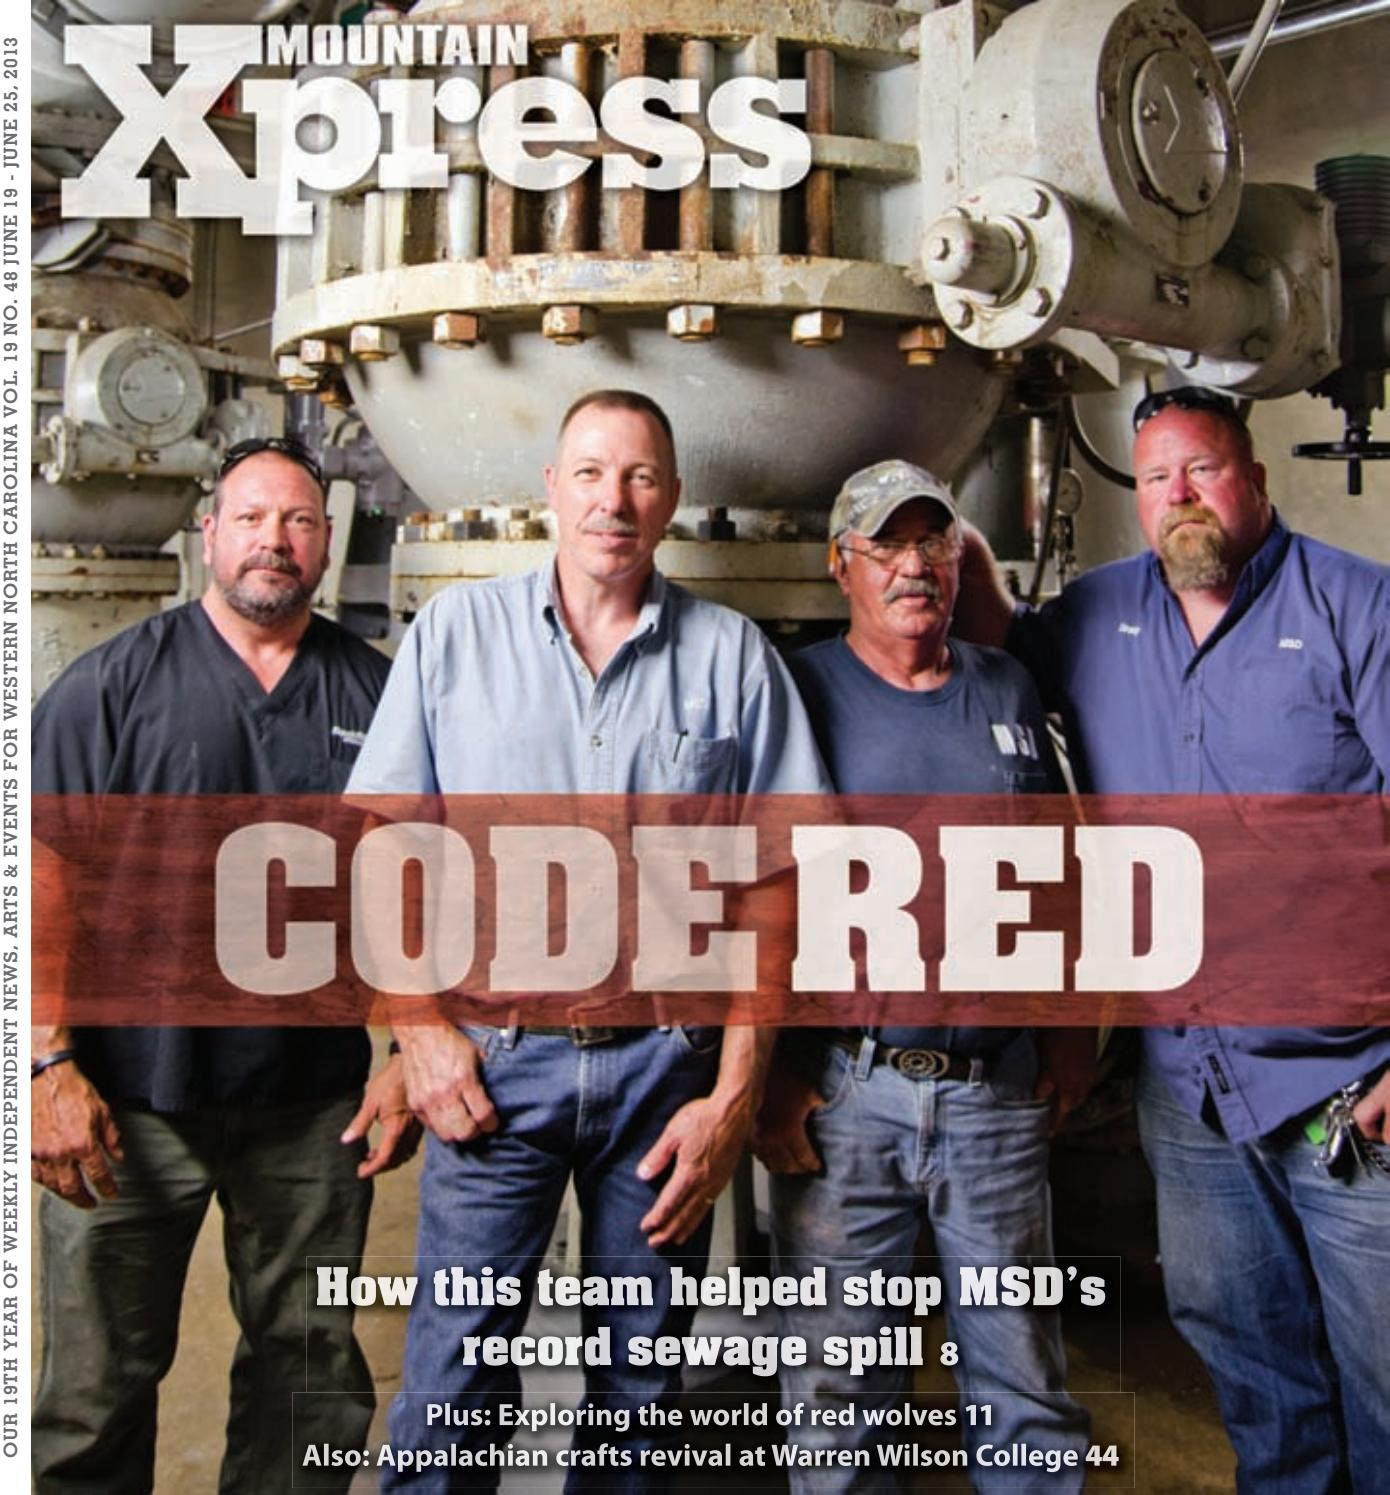 Mountain Xpress 06 19 13 by Mountain Xpress - issuu